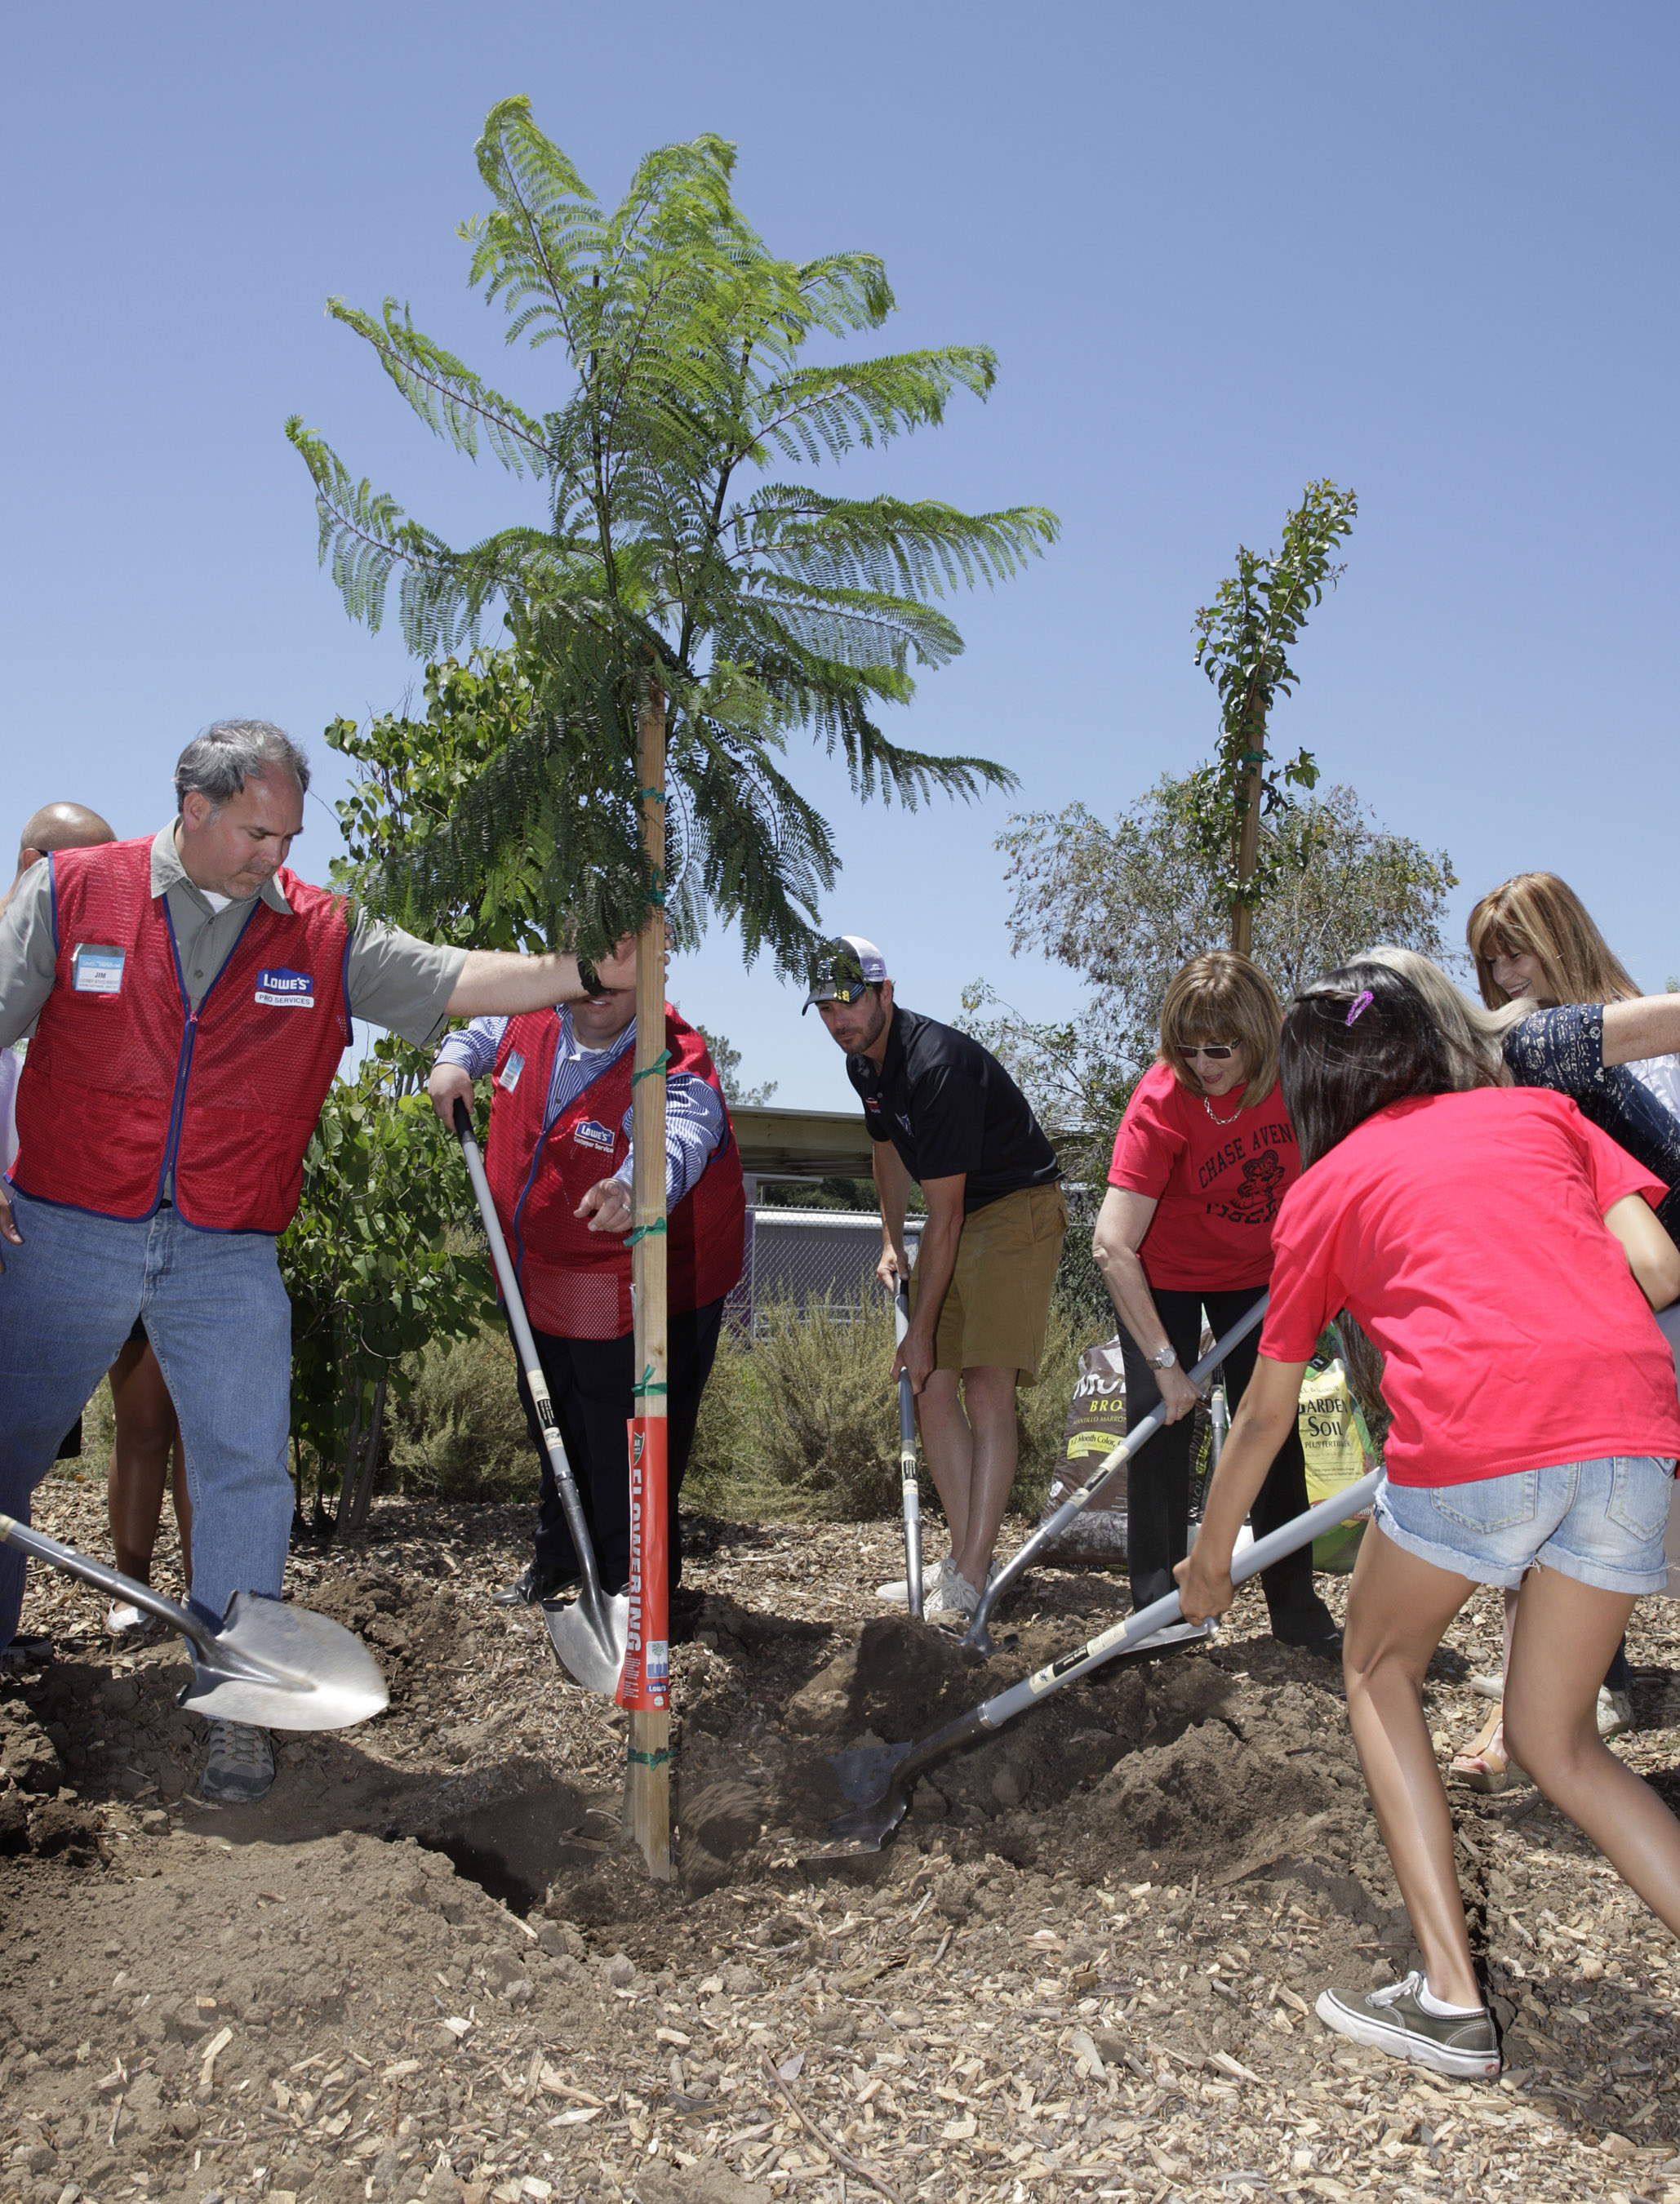 Jimmie, Lowe's Employees and Chase Avenue Elementary students plant trees during Jimmie's visit to the school. (El Cajon, 2013)